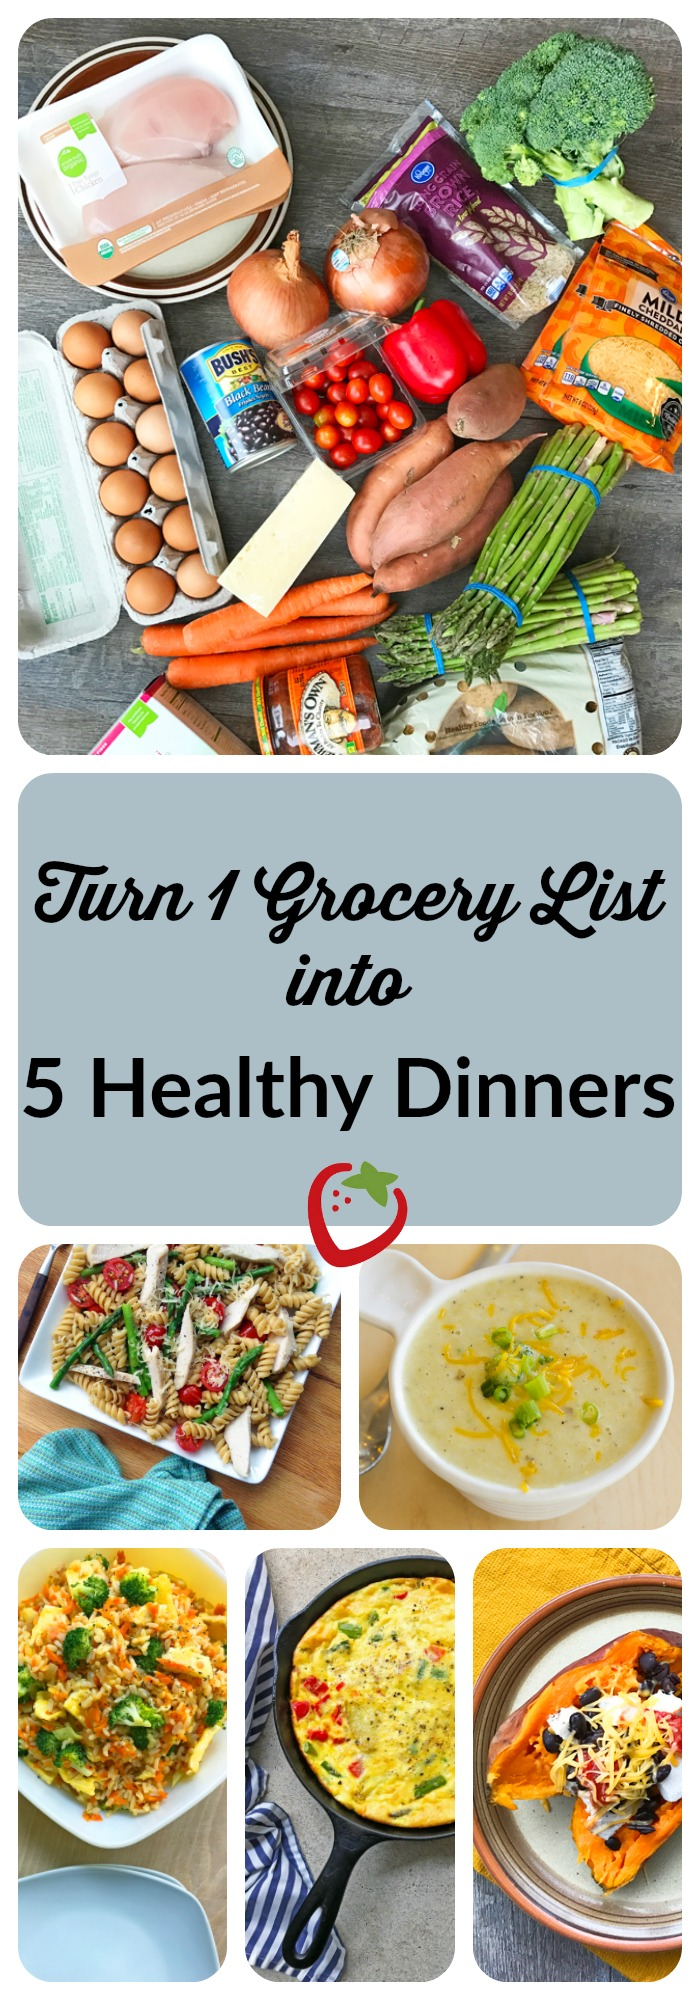 HOUSEHOLD - Turn One Grocery List into Five Healthy Dinners. Cook fresh family dinners each night this week using this guide! One grocery list and consolidated prep makes it easy. http://www.superhealthykids.com/one-grocery-list-five-healthy-dinners/